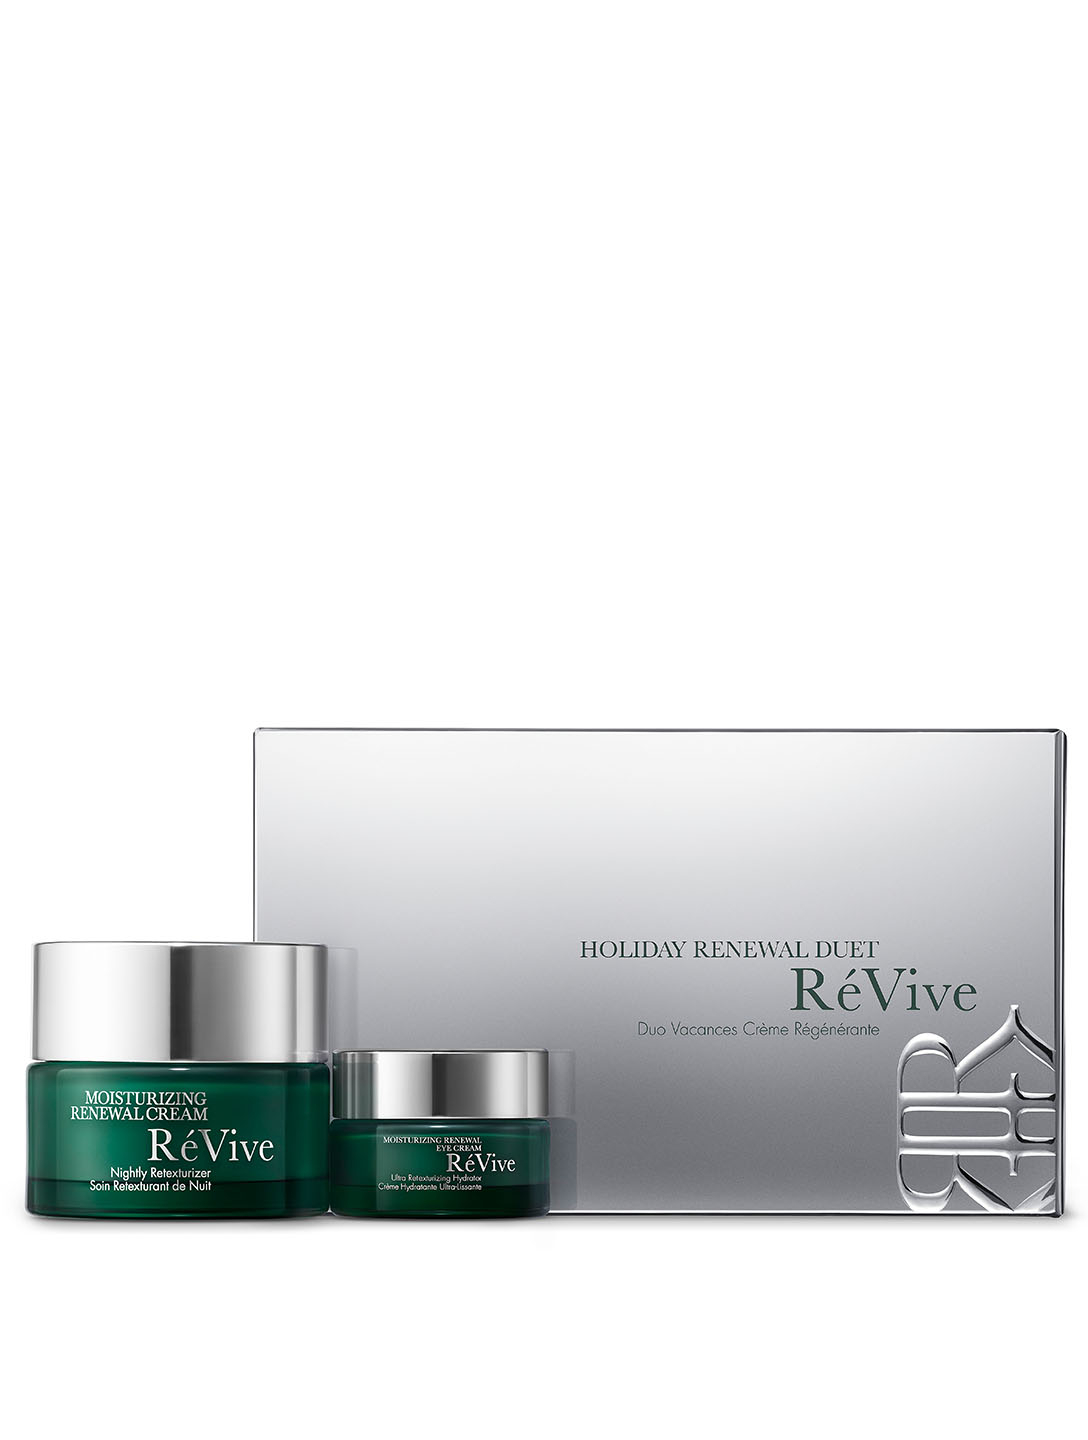 RÉVIVE Holiday Renewal Duet - Limited Edition Designers